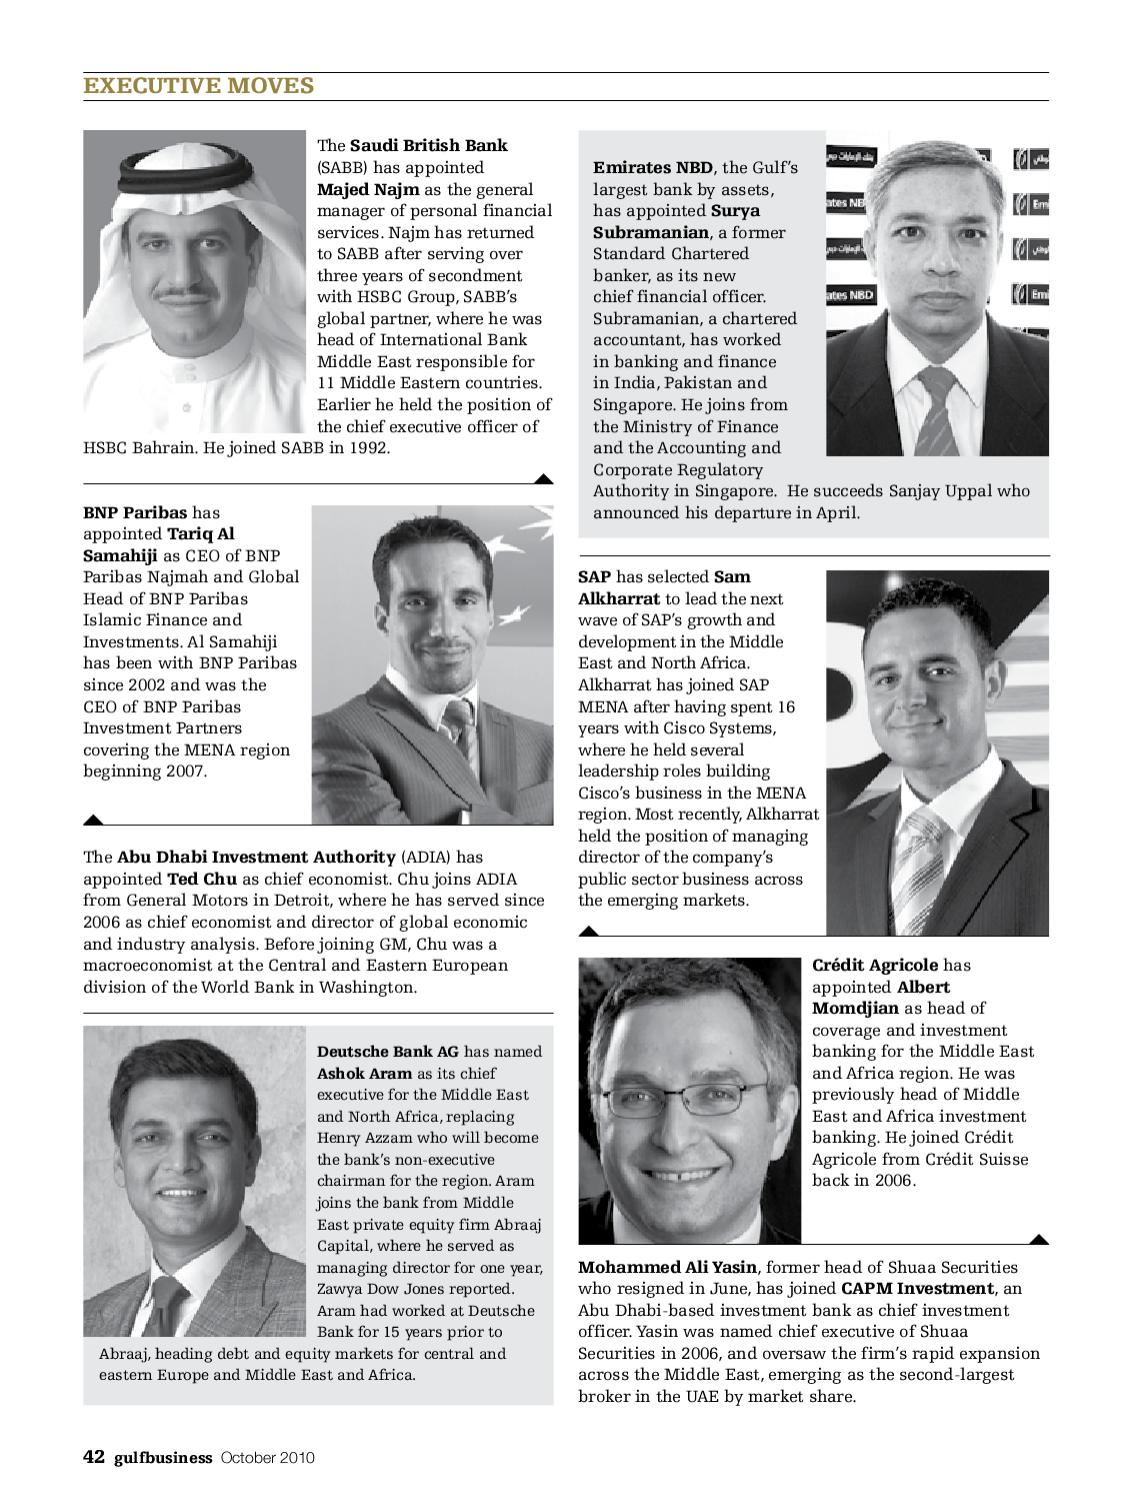 Gulf Business | October 2010 by Motivate Publishing - issuu